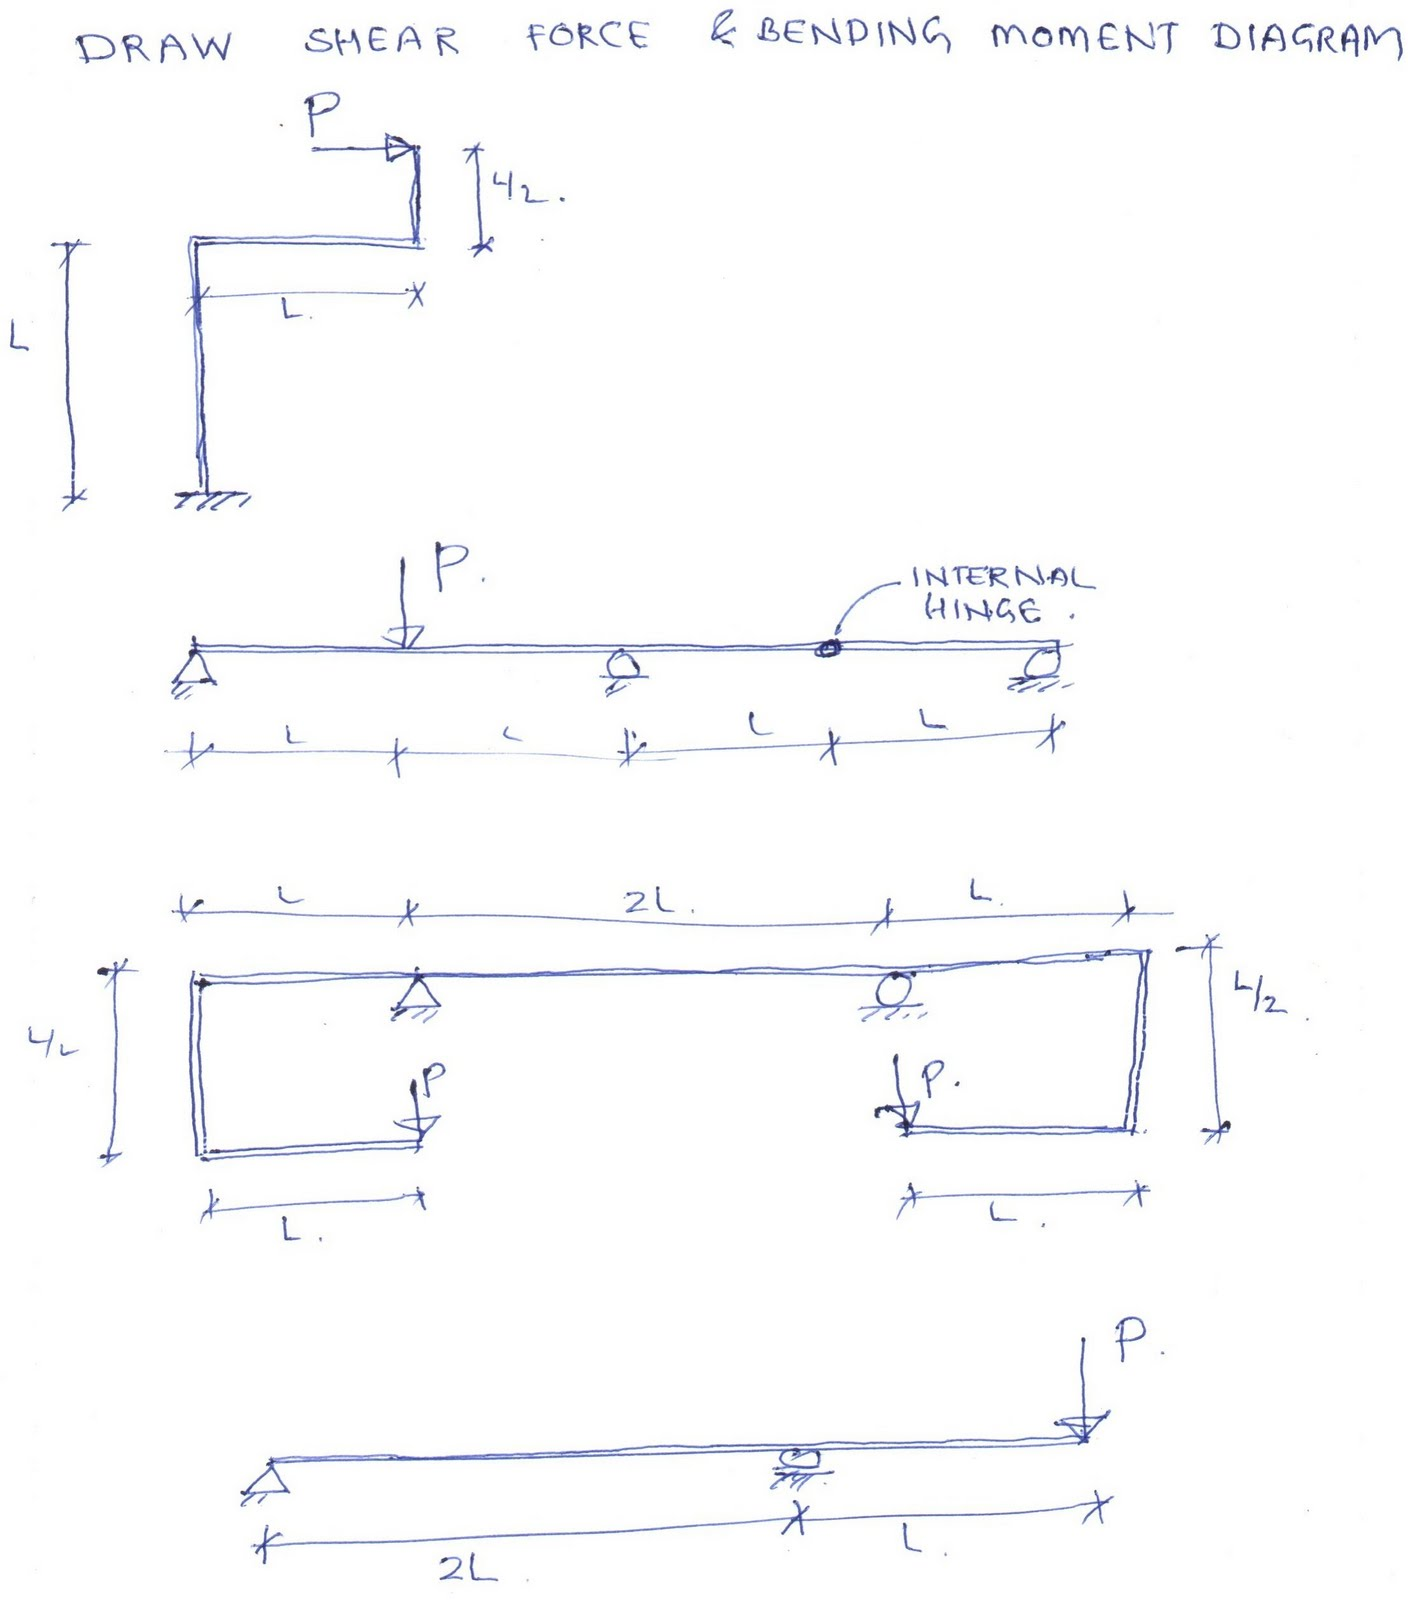 Structural Design Interview Questions For Engineers Draw Shear Force Diagram Deflected Shape And Bending Moment